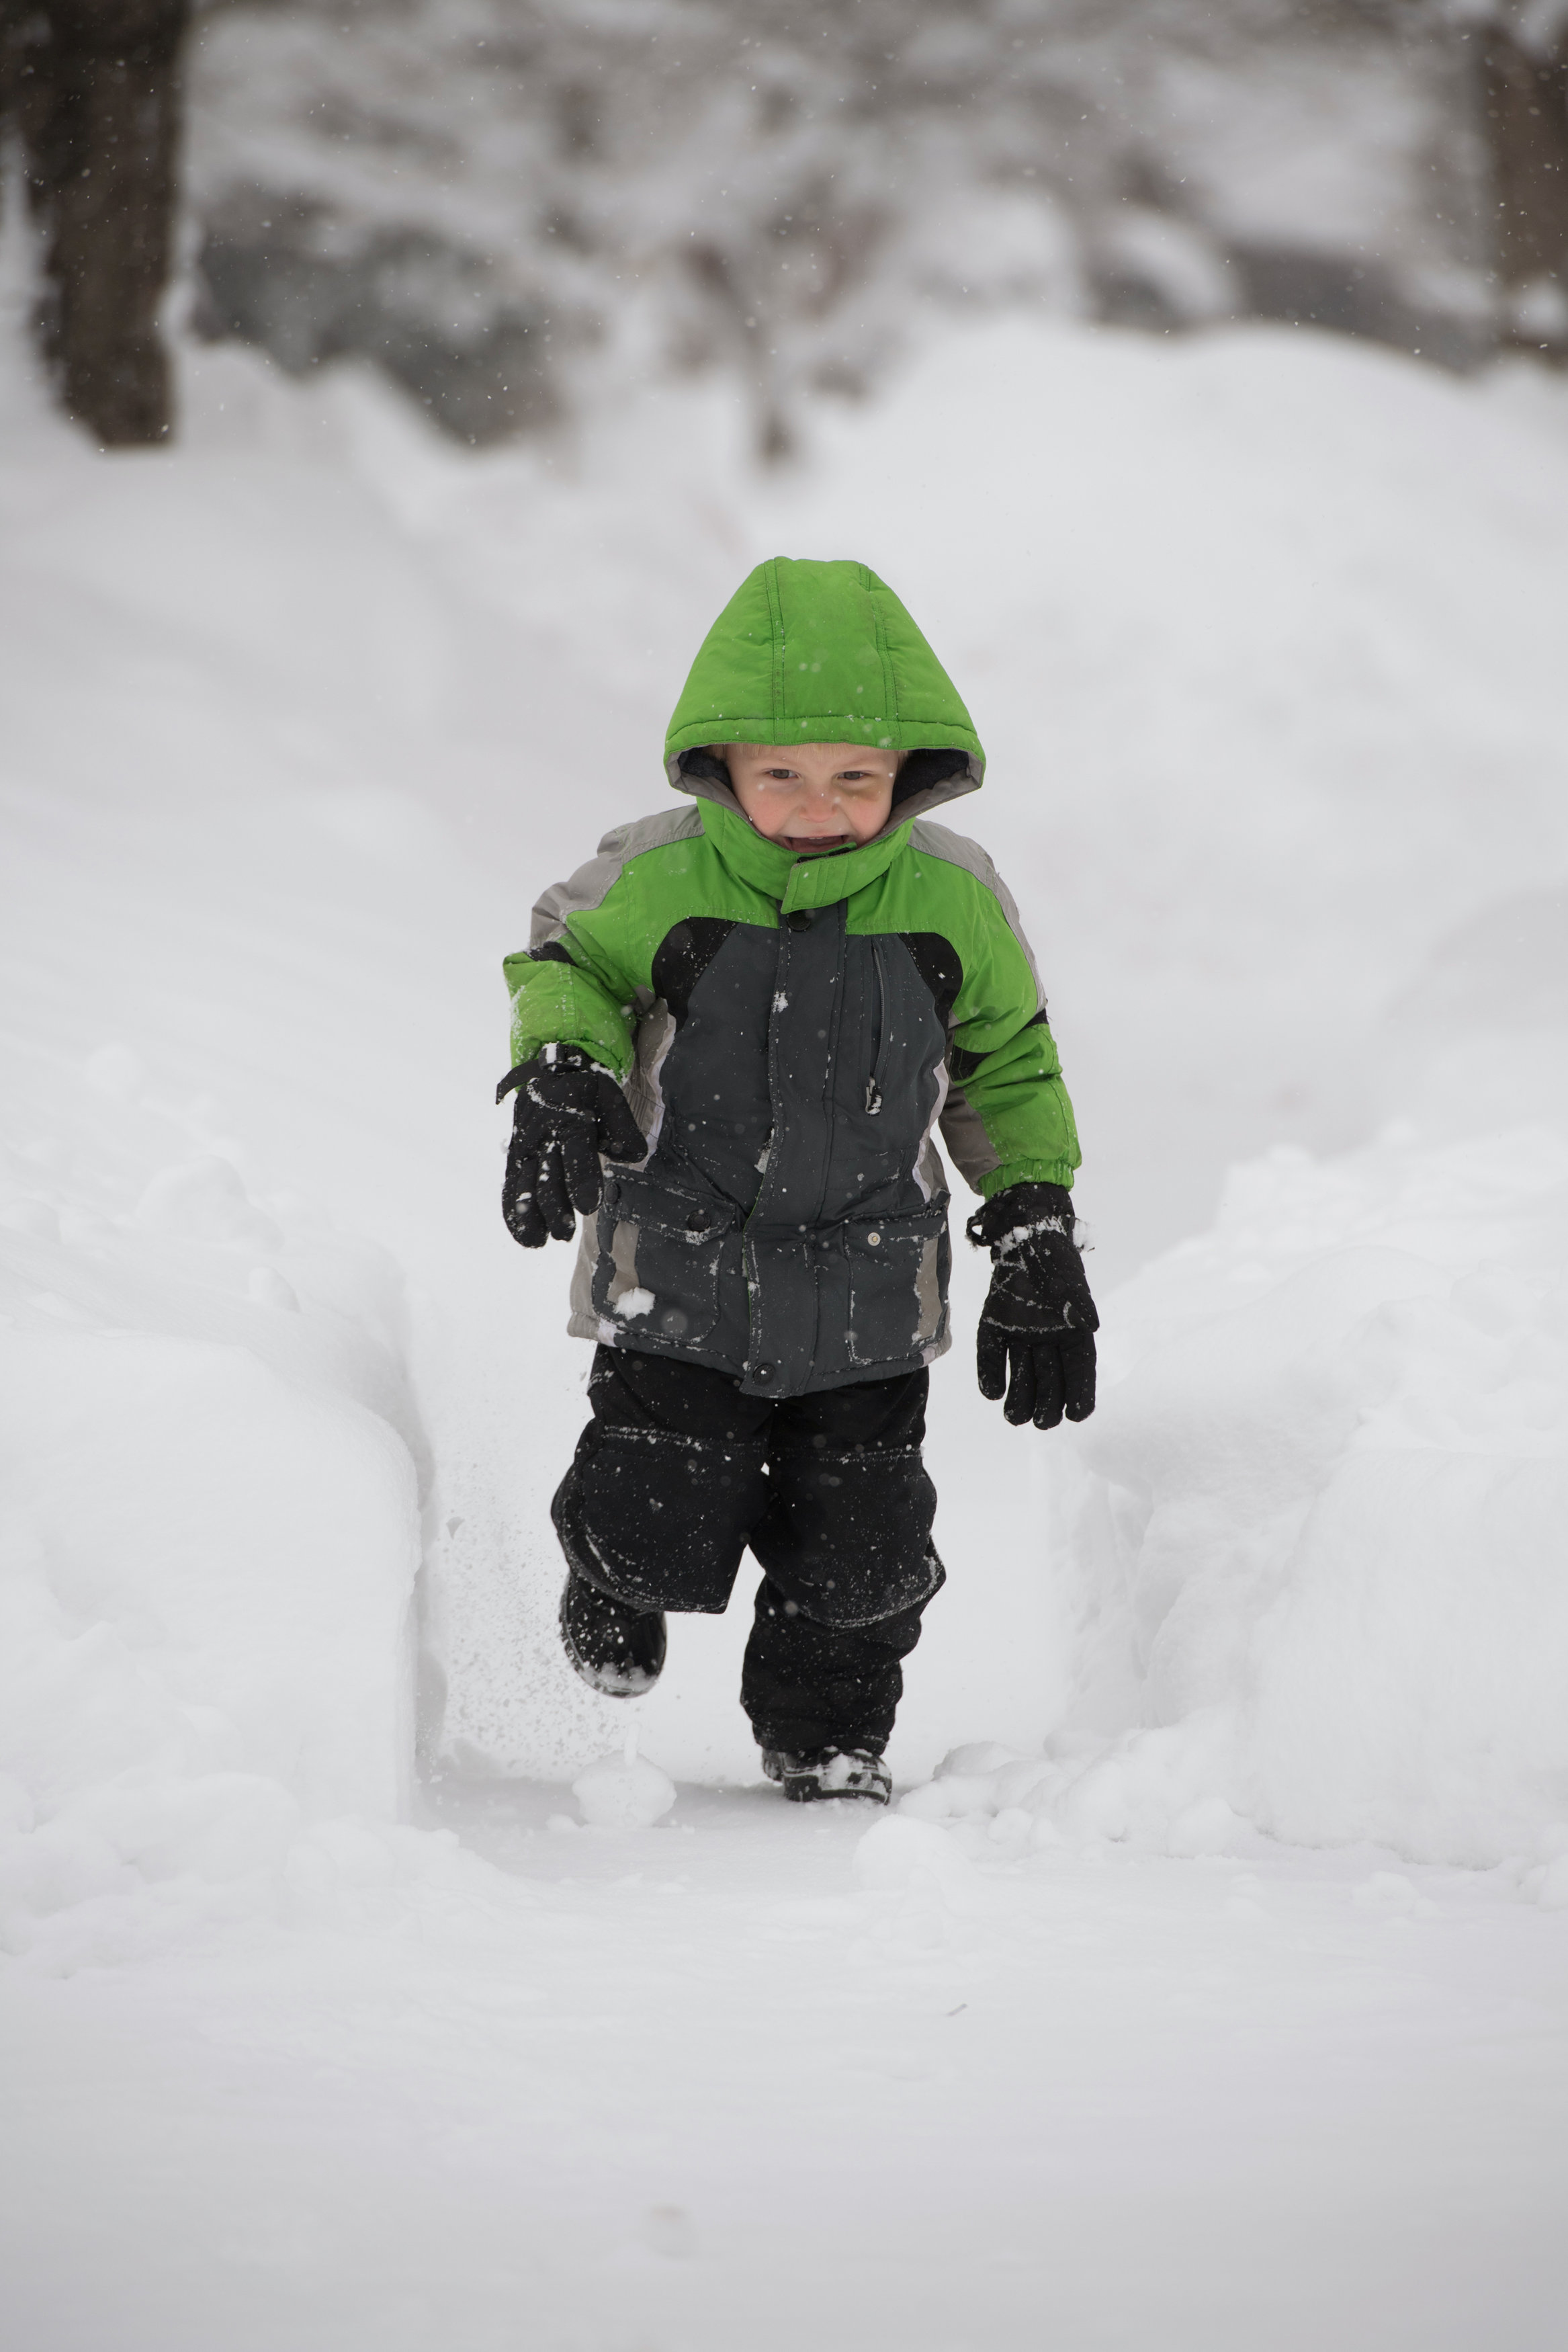 Silas Stueve plays in the snow after two days of record-breaking snowfall in Erie, Pennsylvania, U.S., December 27, 2017.